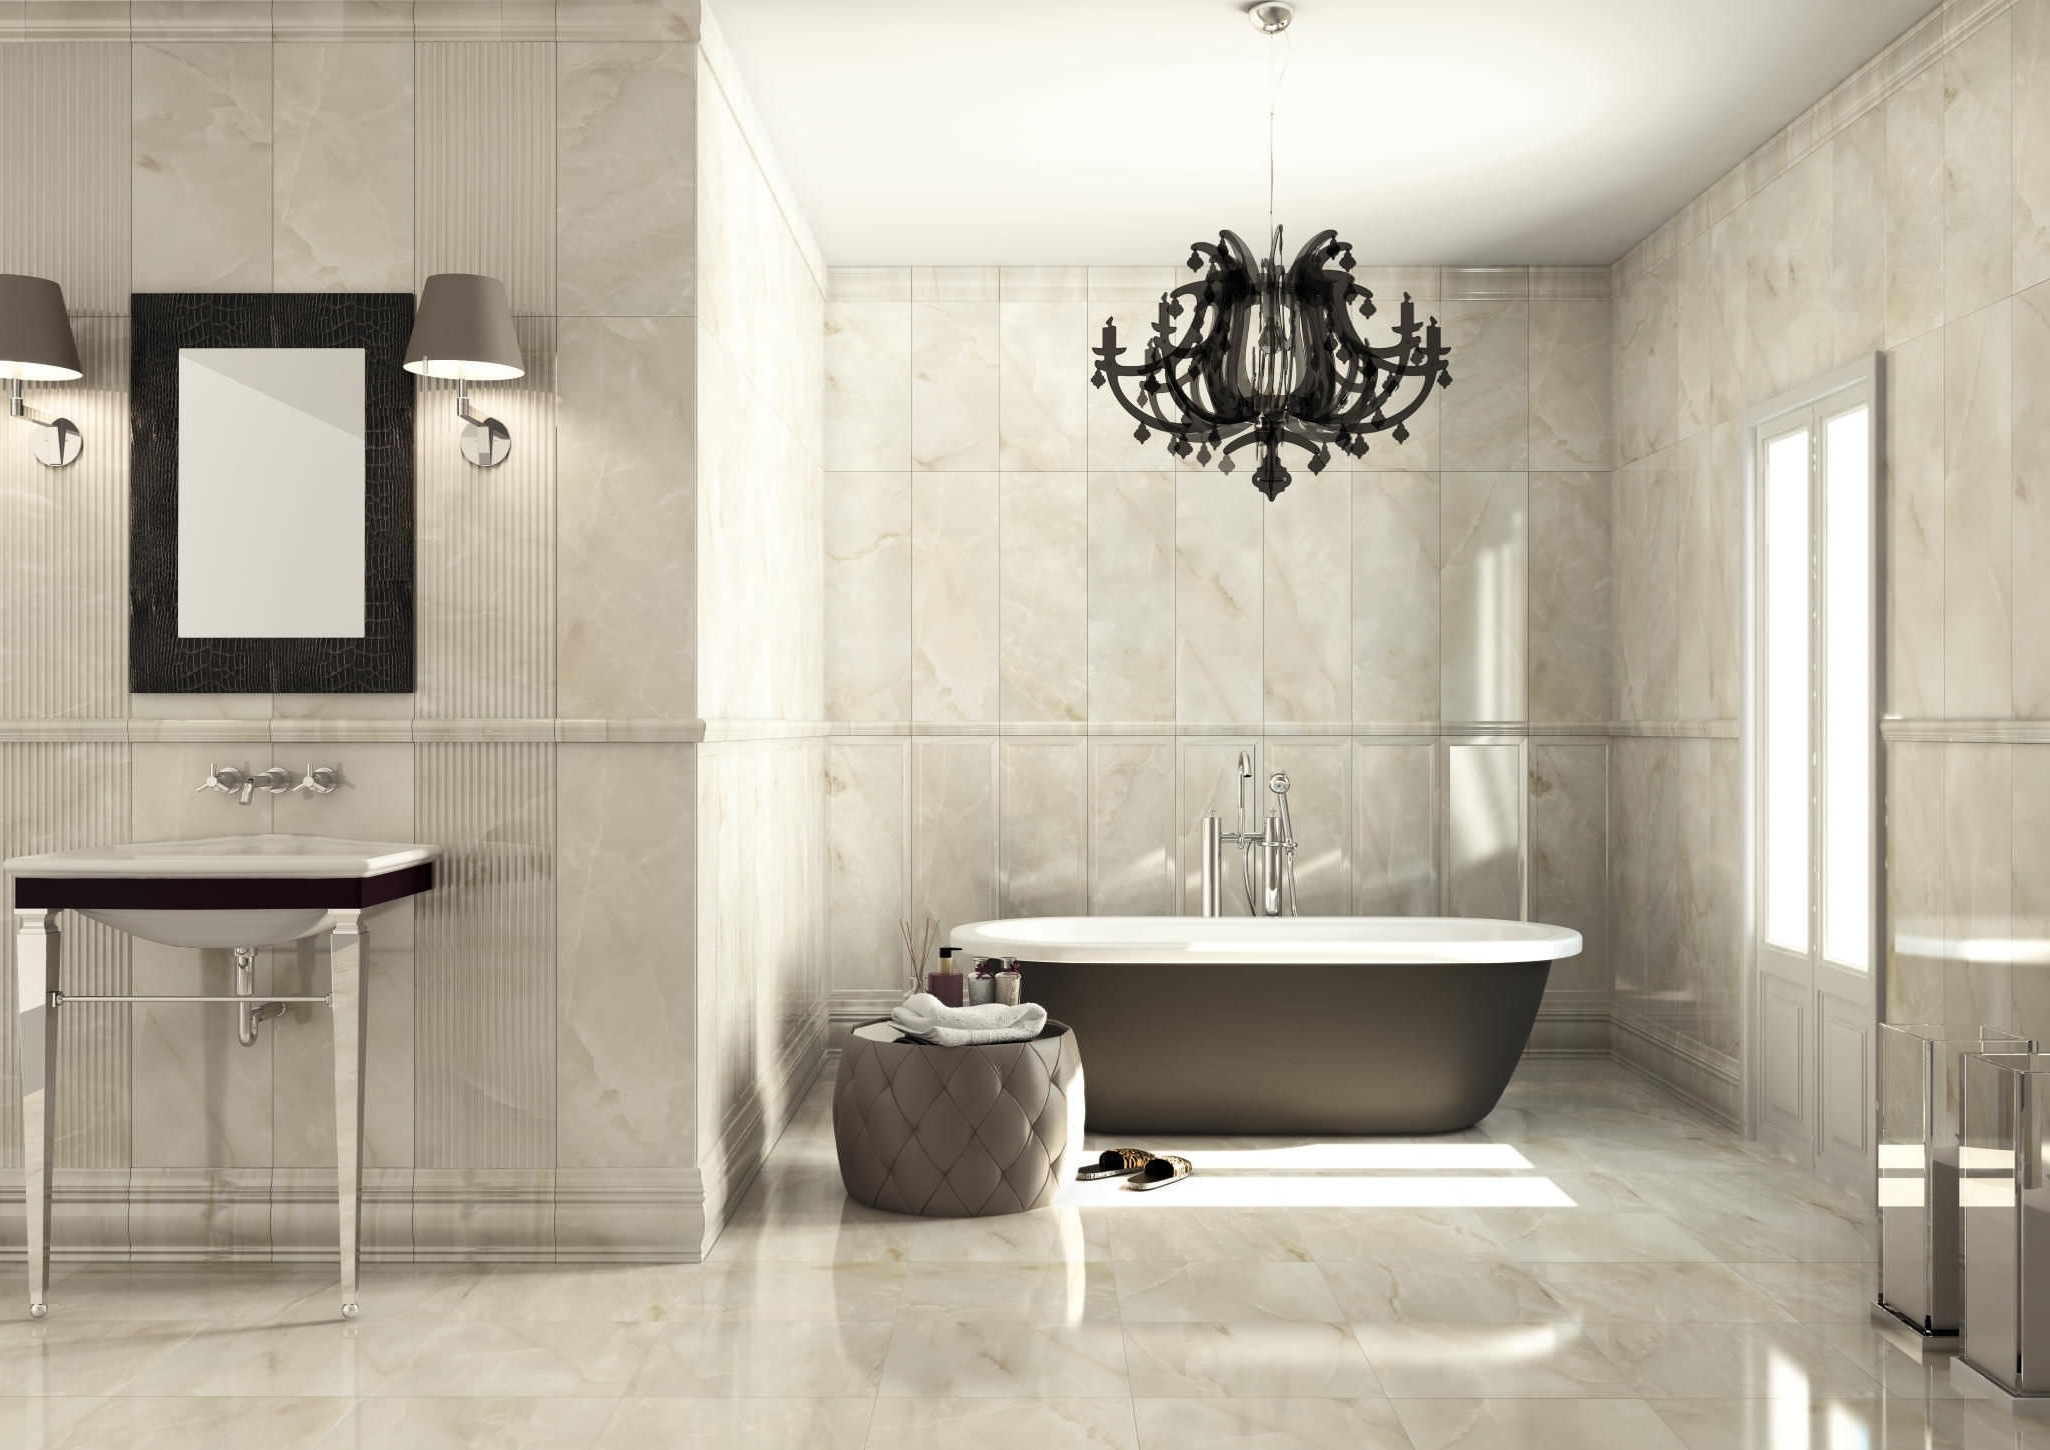 Bath With Glass Chandelier And Pedestal Tub Traditional With Regard To Bathroom Chandeliers (View 13 of 15)